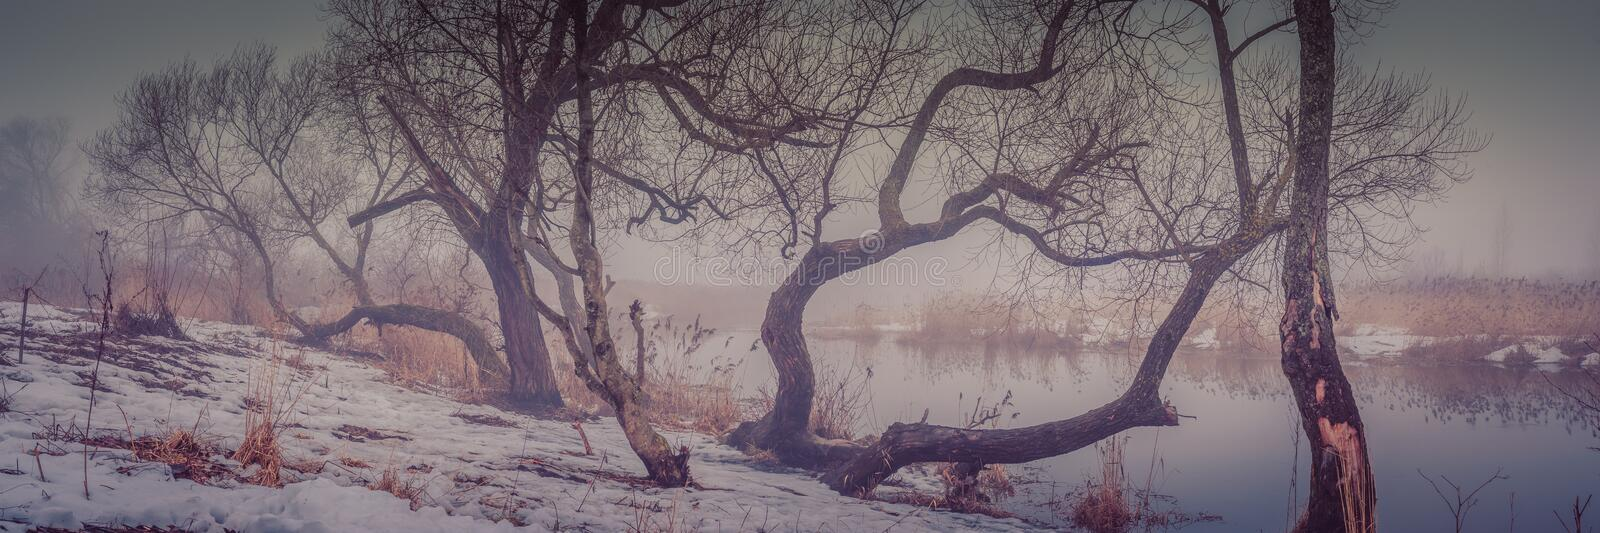 winter-spring misty landscape. panoramic view of the bare trees on the snowy coast of the river against the background of fog stock photo